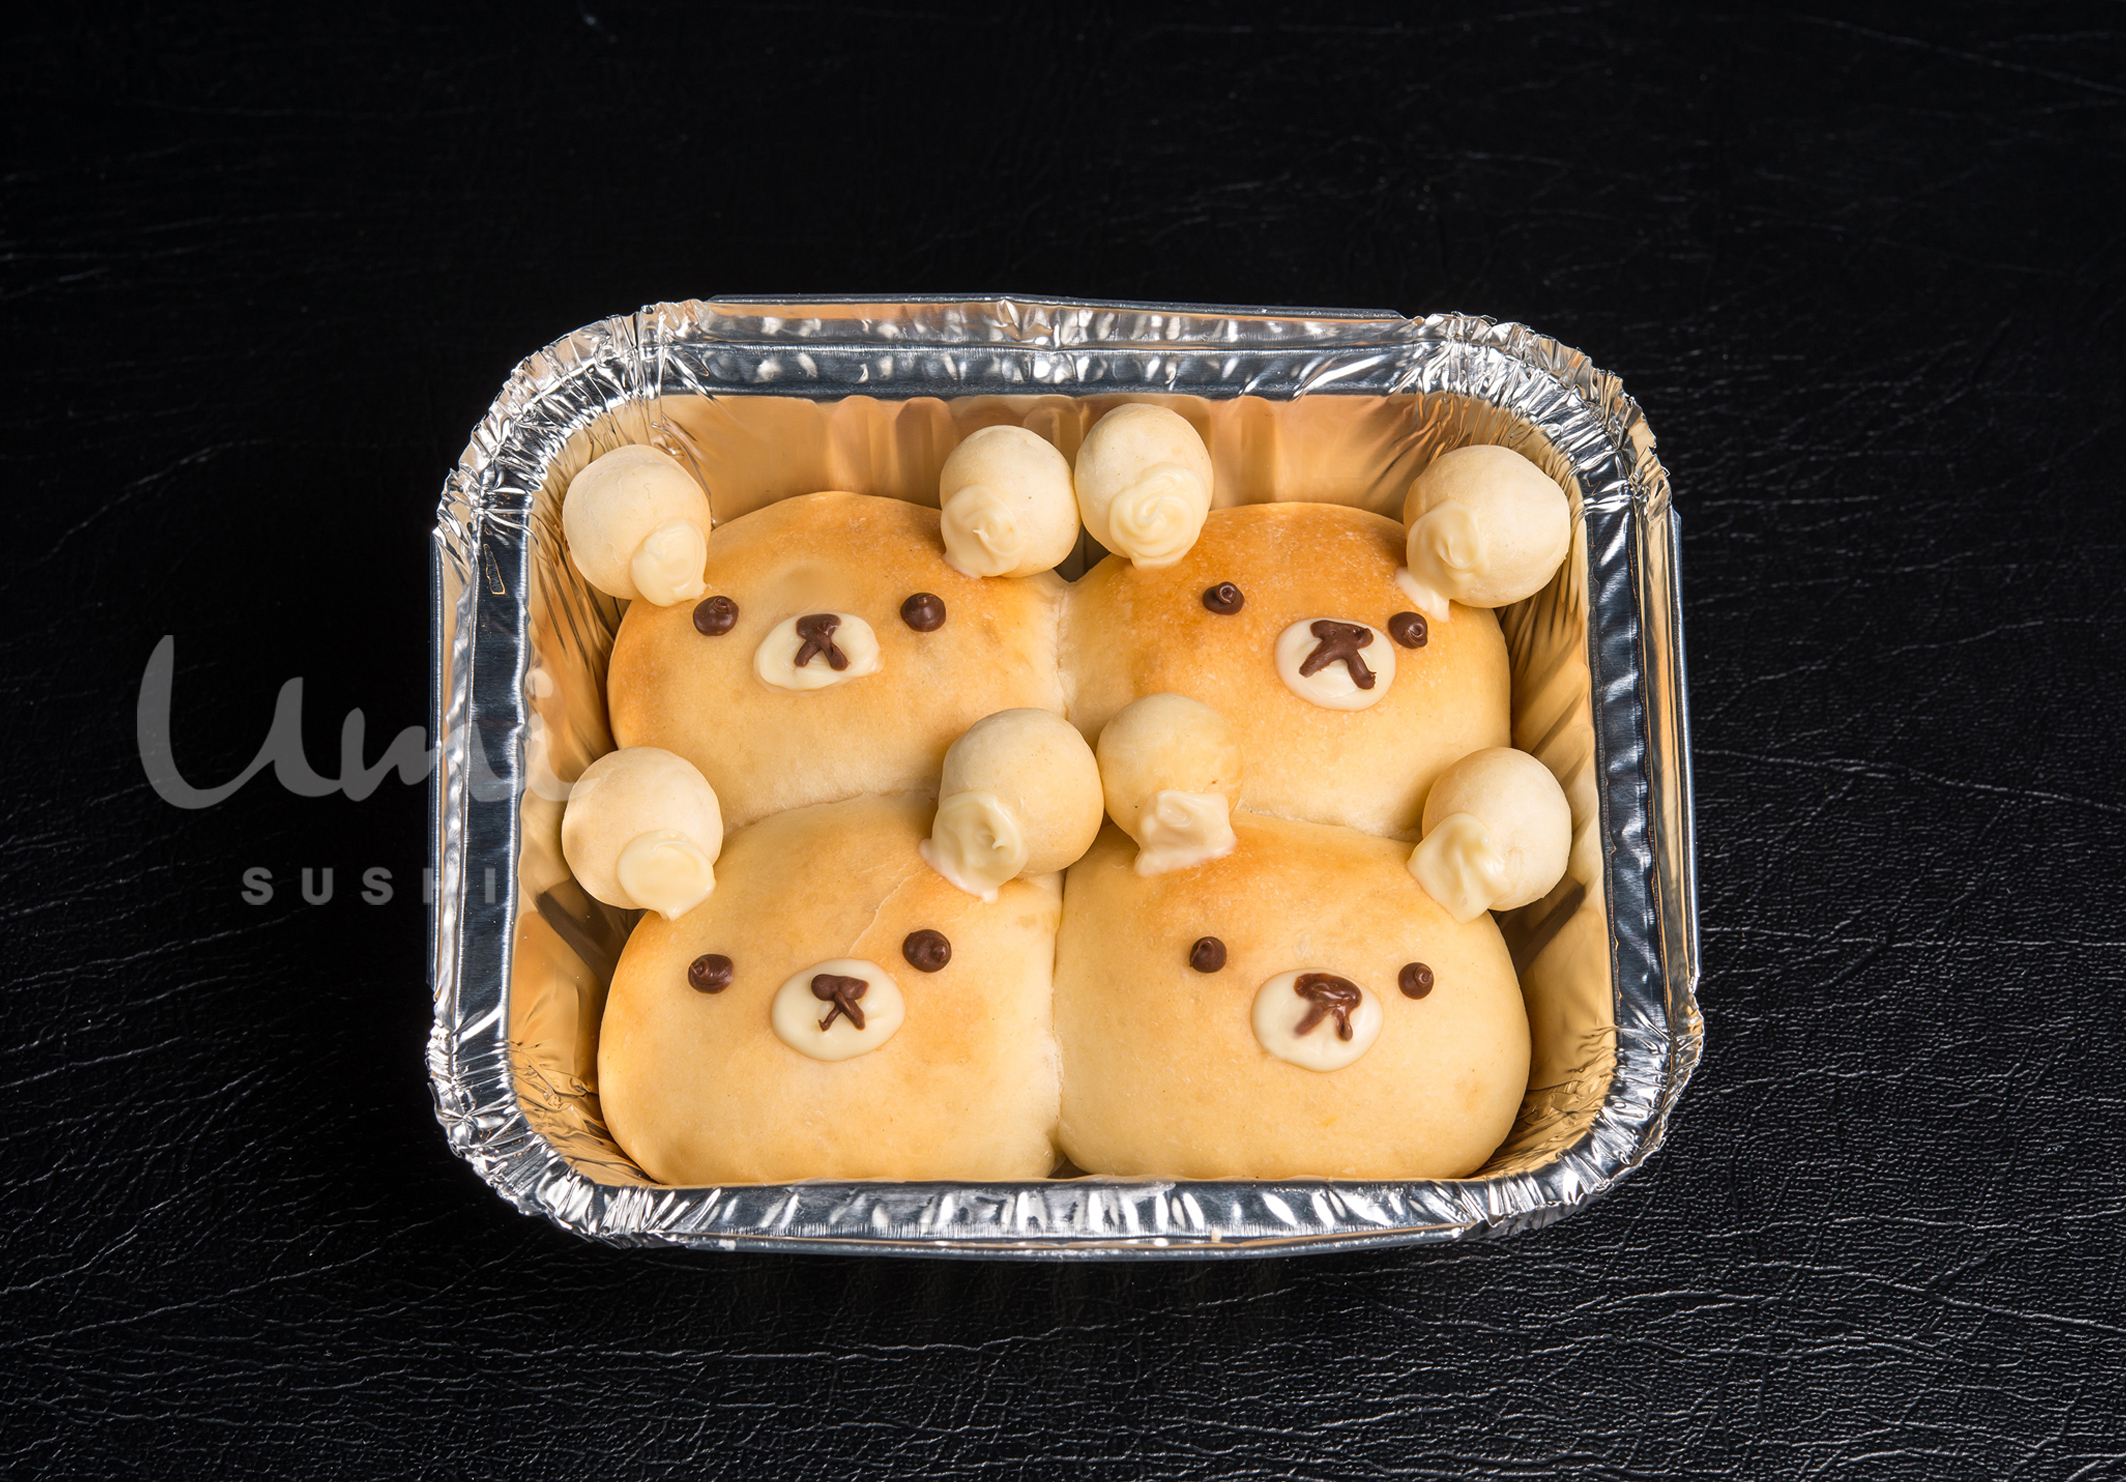 Custard Teddy Buns